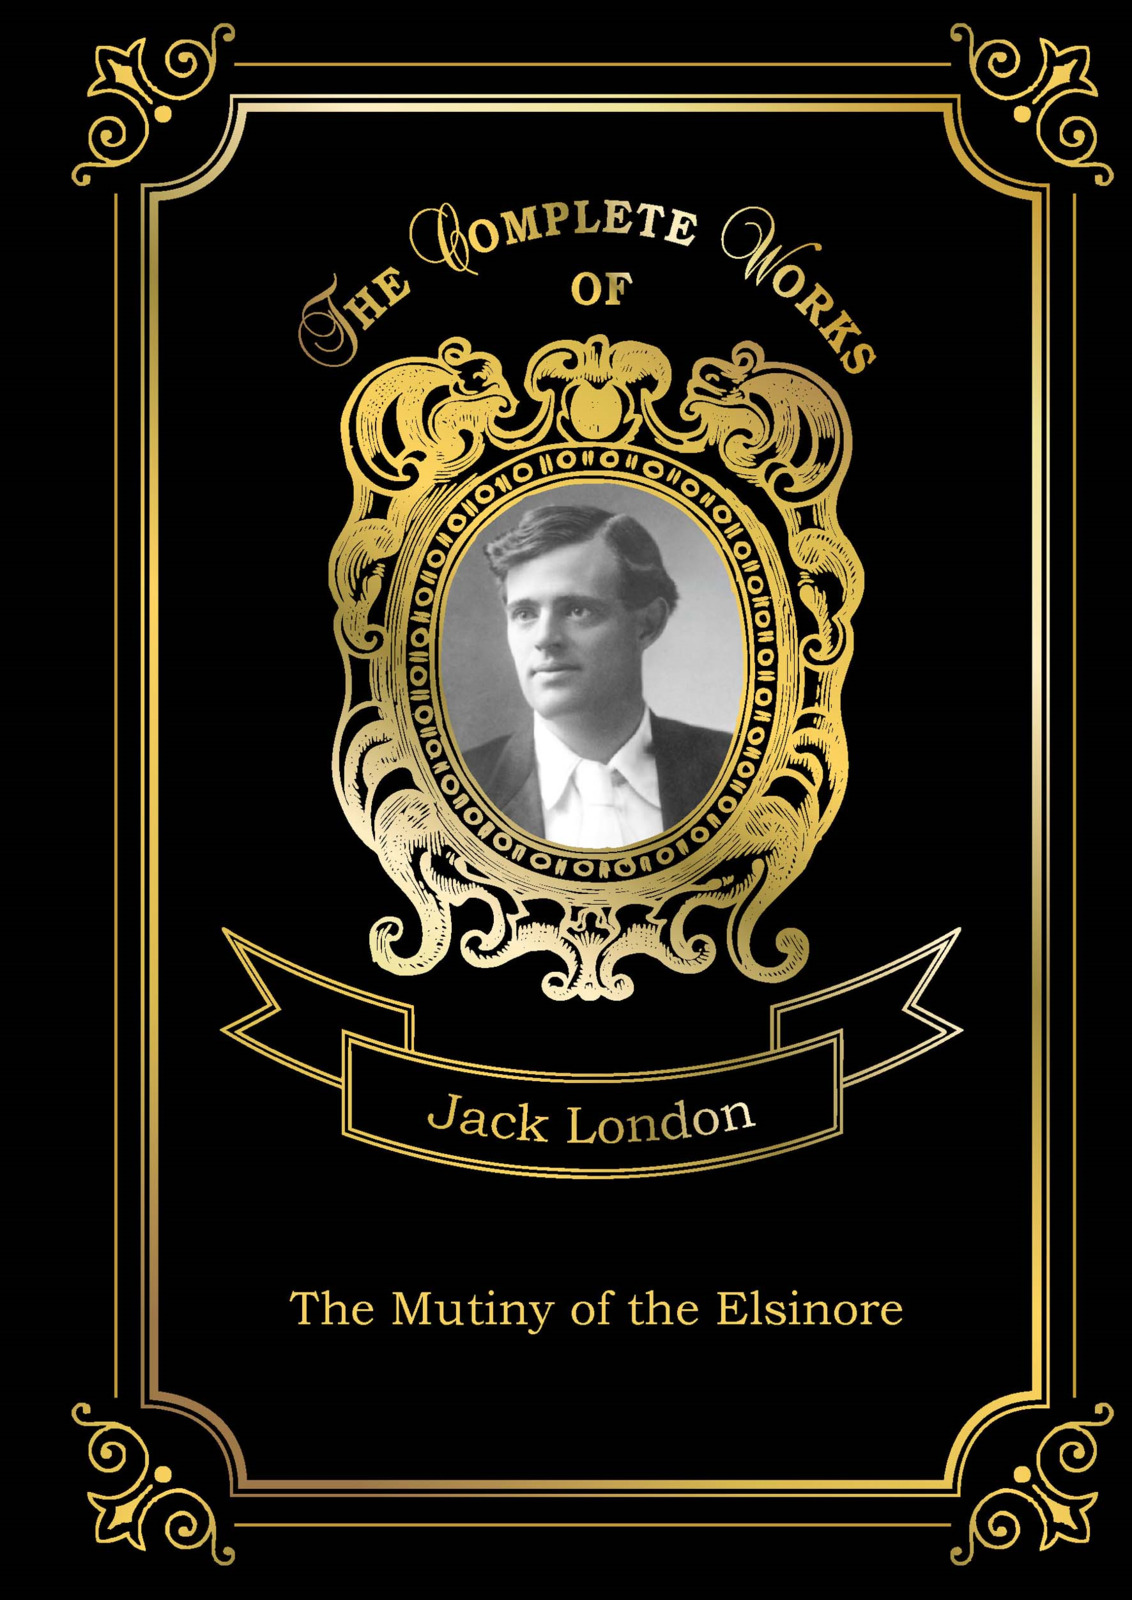 Jack London The Mutiny of the Elsinore